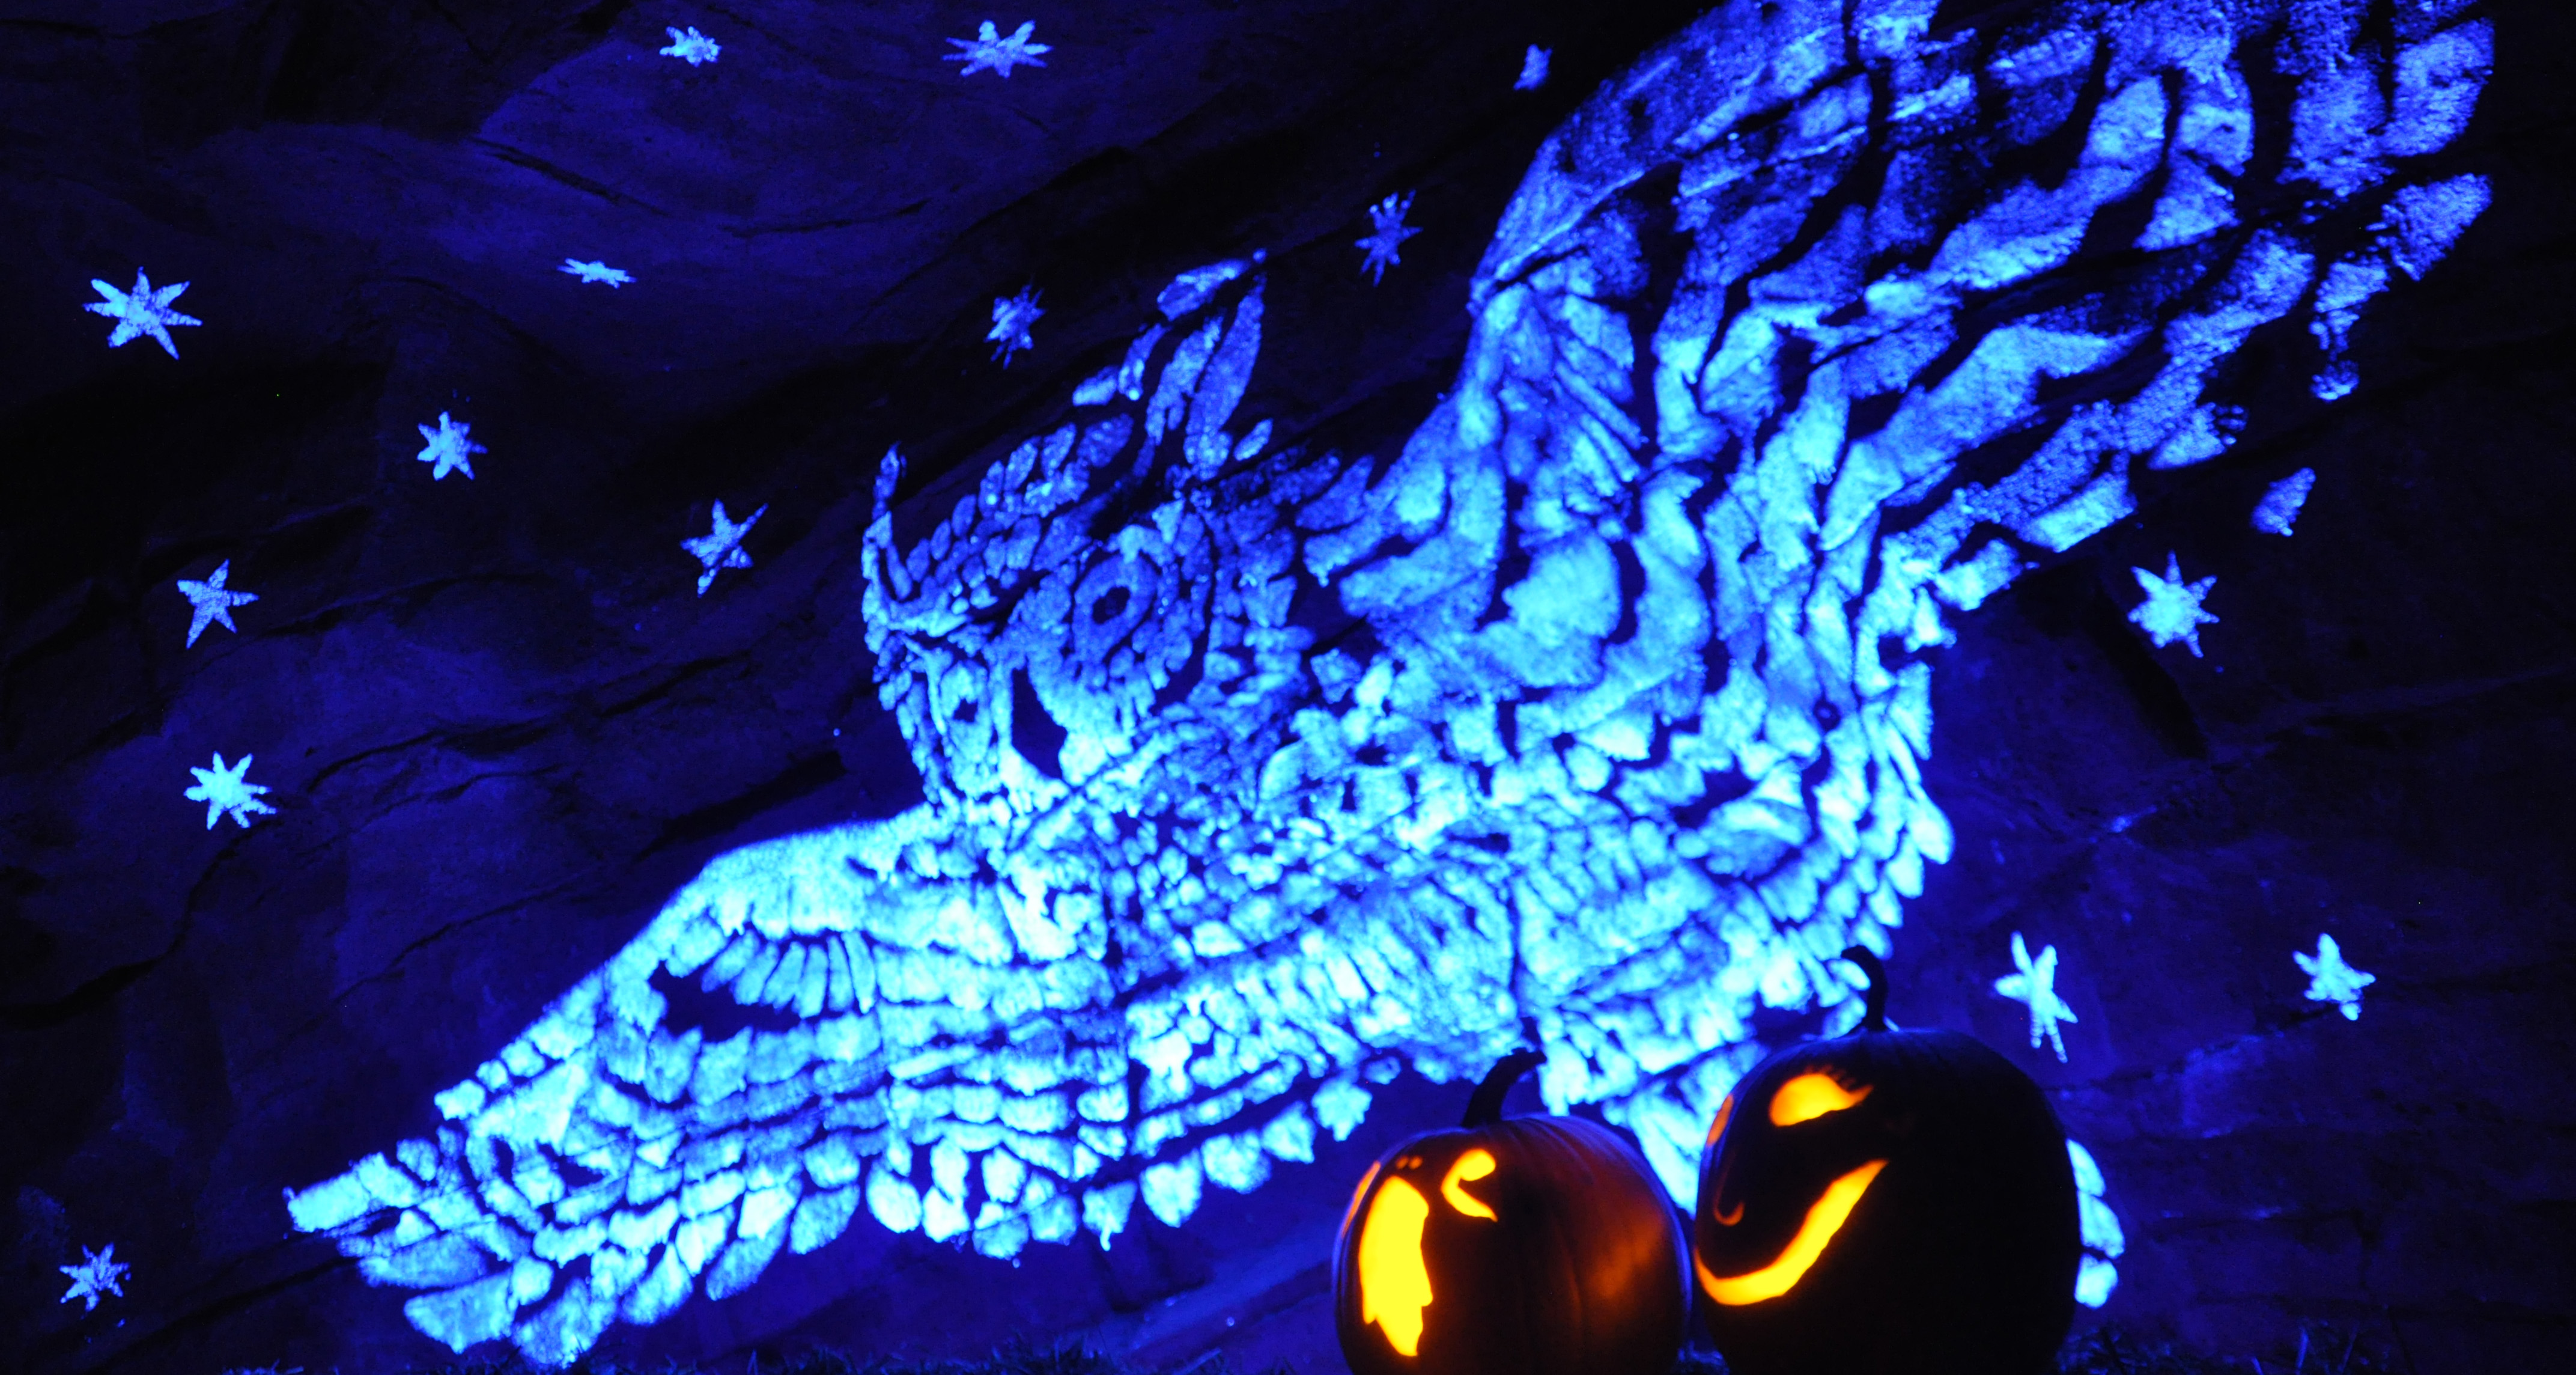 Owl in flight (2015 ultraviolet light art in limestone cave)